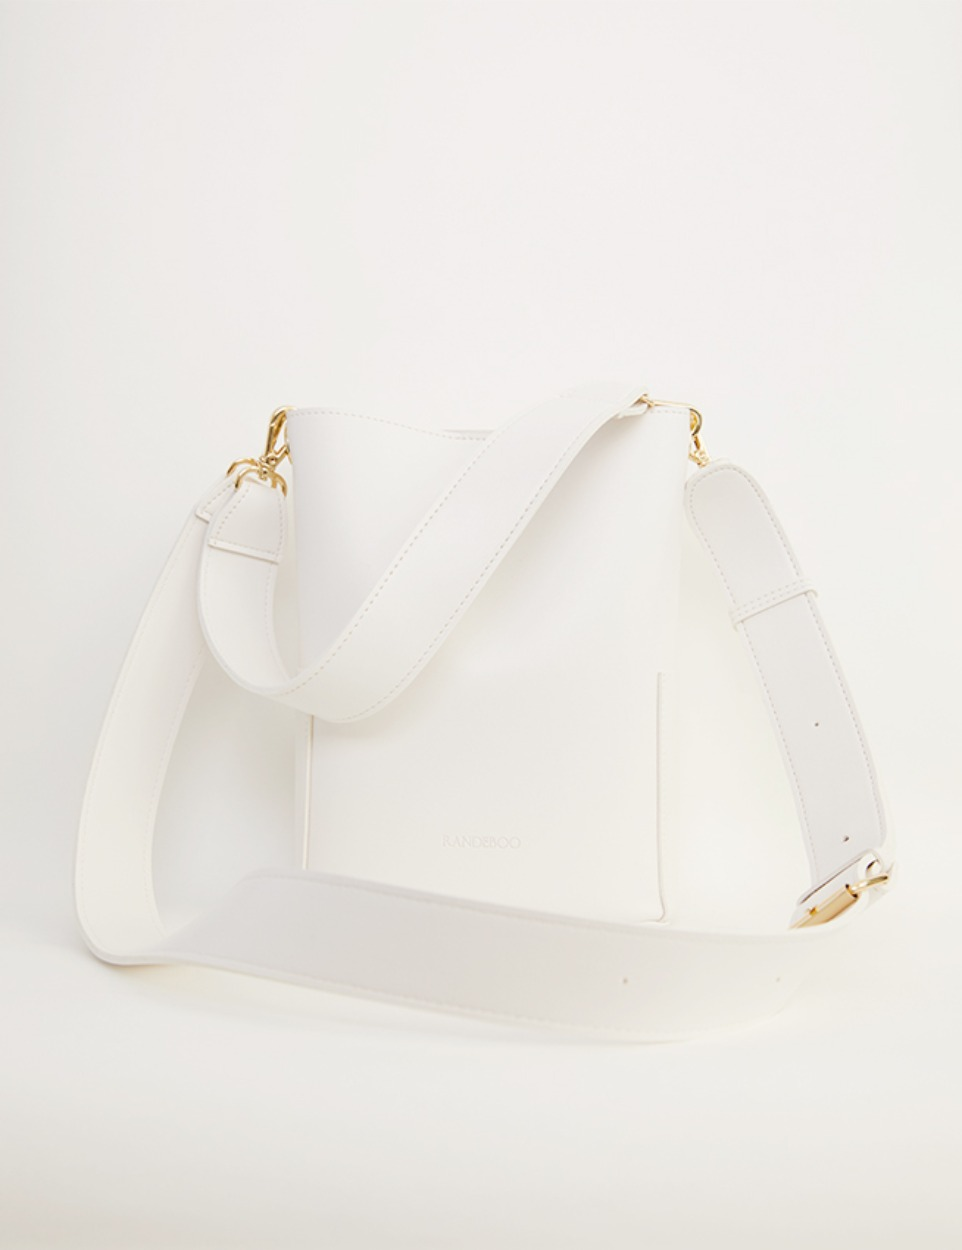 RB petit bucket bag(white)